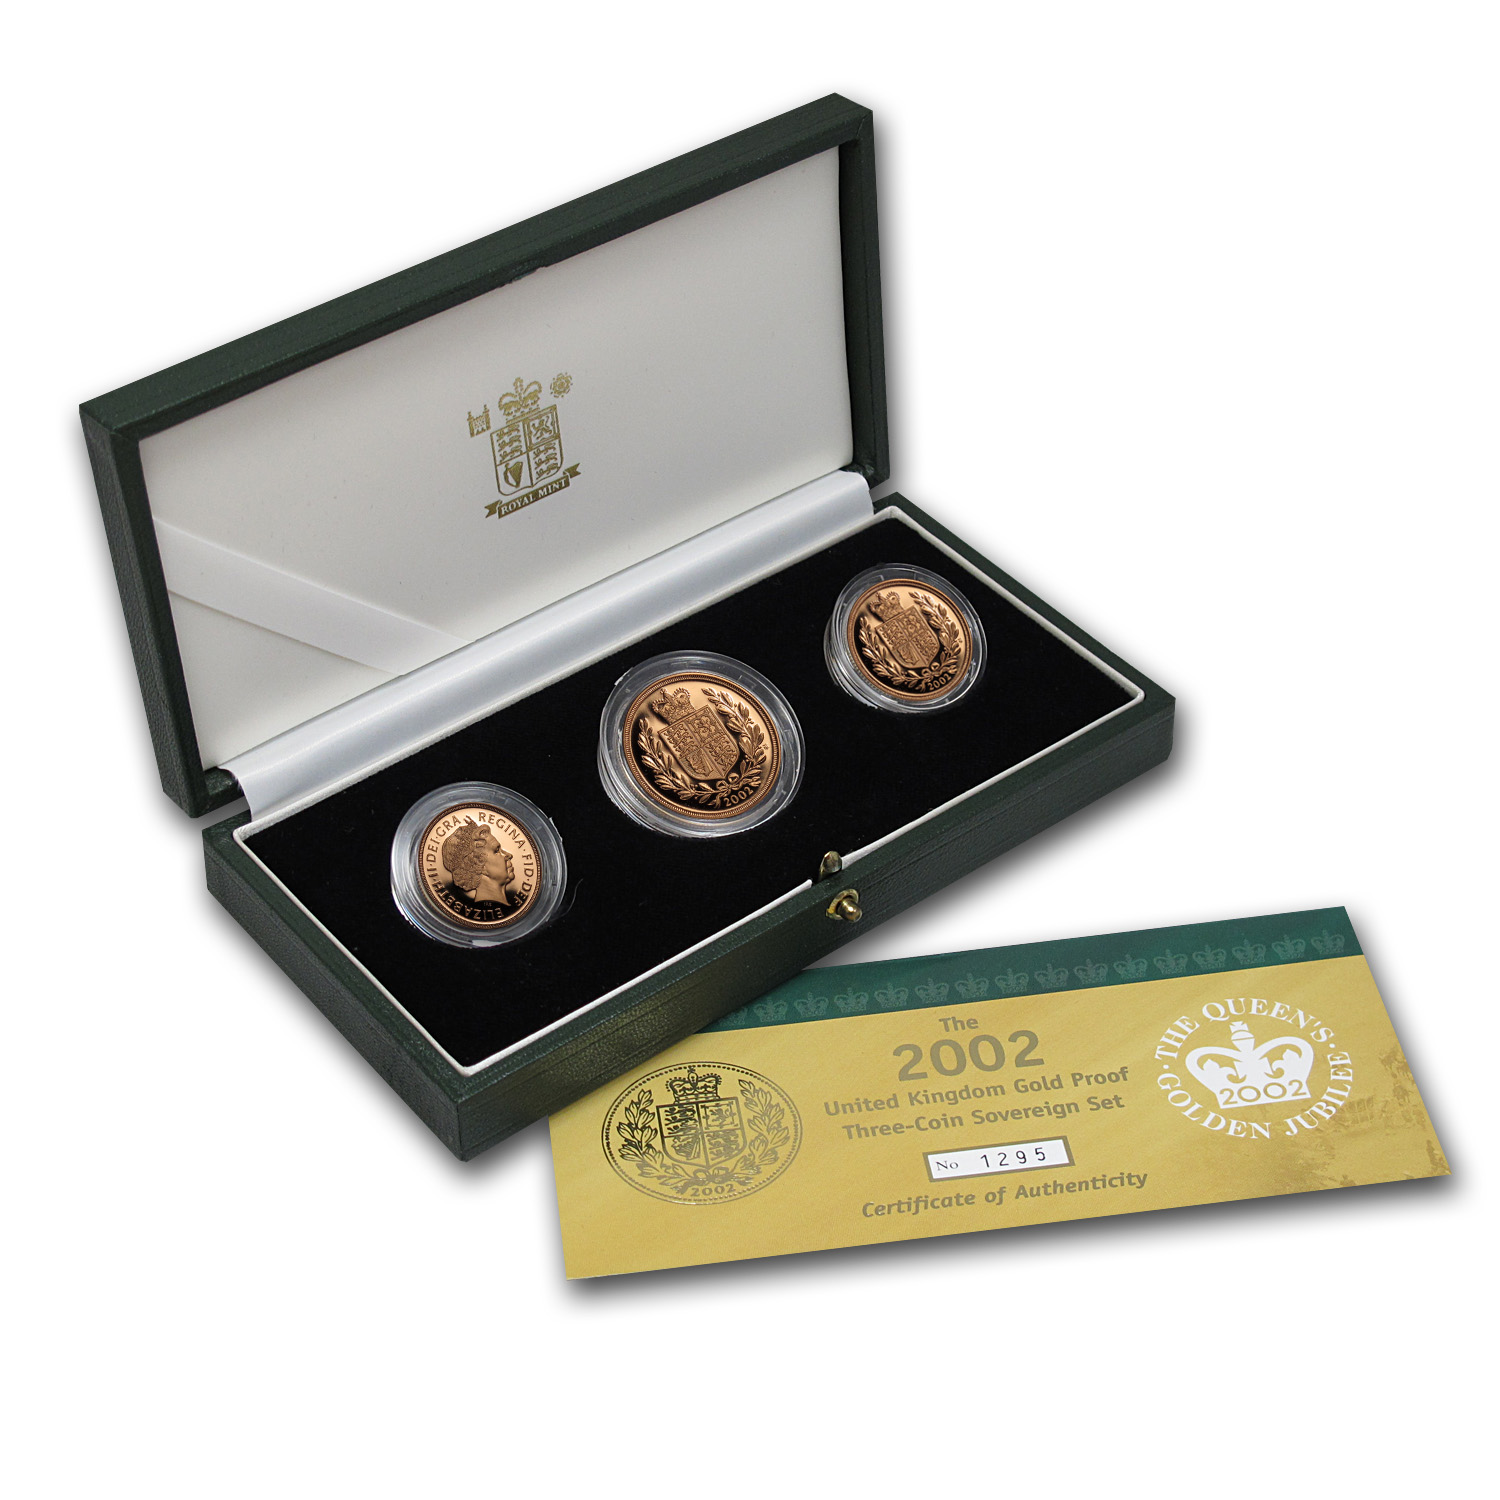 2002 Great Britain 3-Coin Gold Sovereign Proof Set